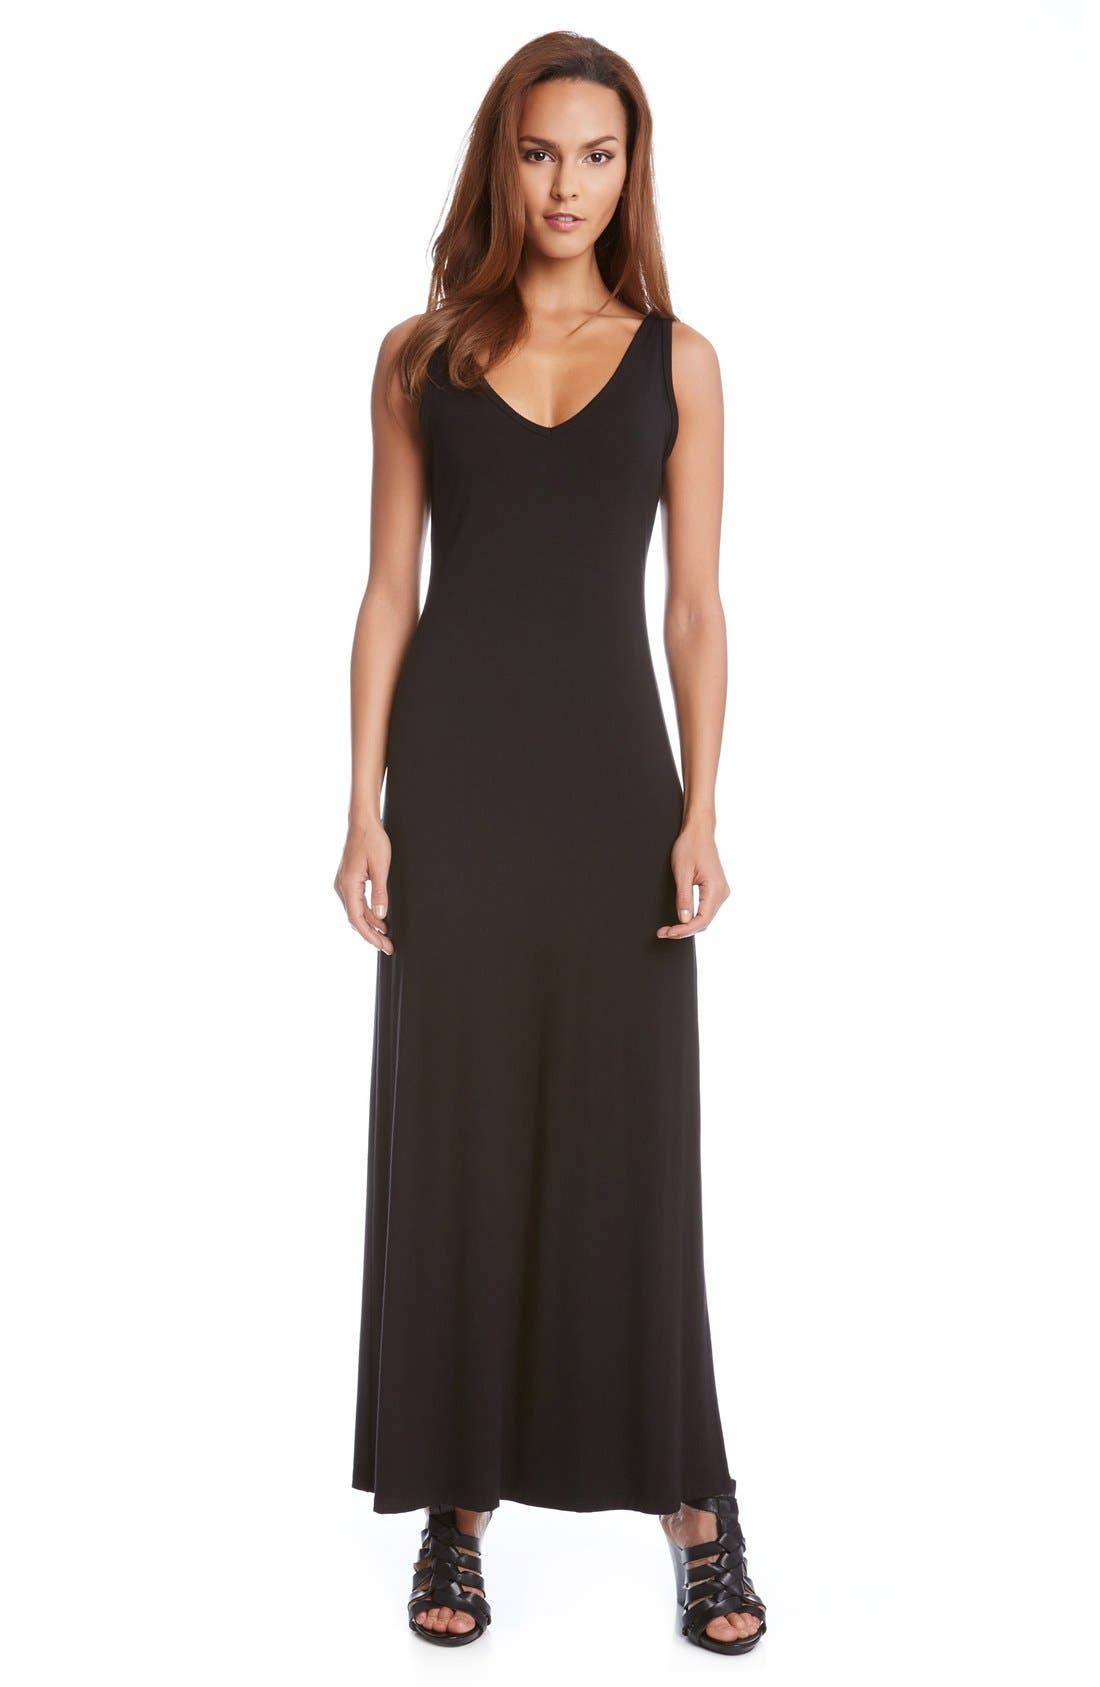 Main Image - Karen Kane 'Alana' Double V-Neck Maxi Dress